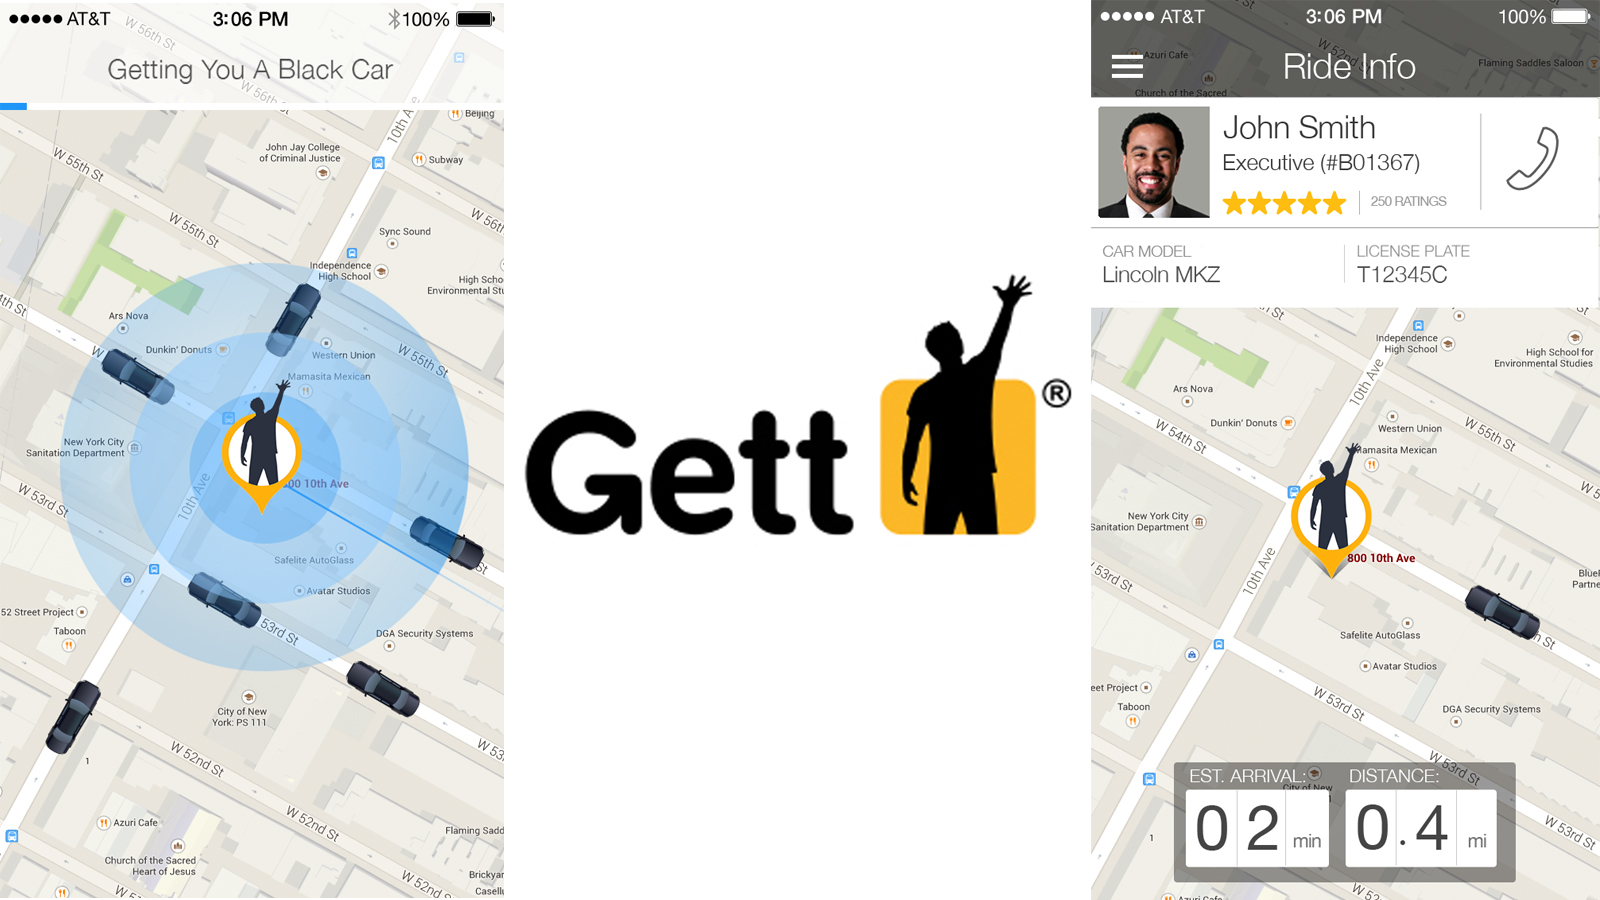 Gett ride-hailing app. Photos by Gett